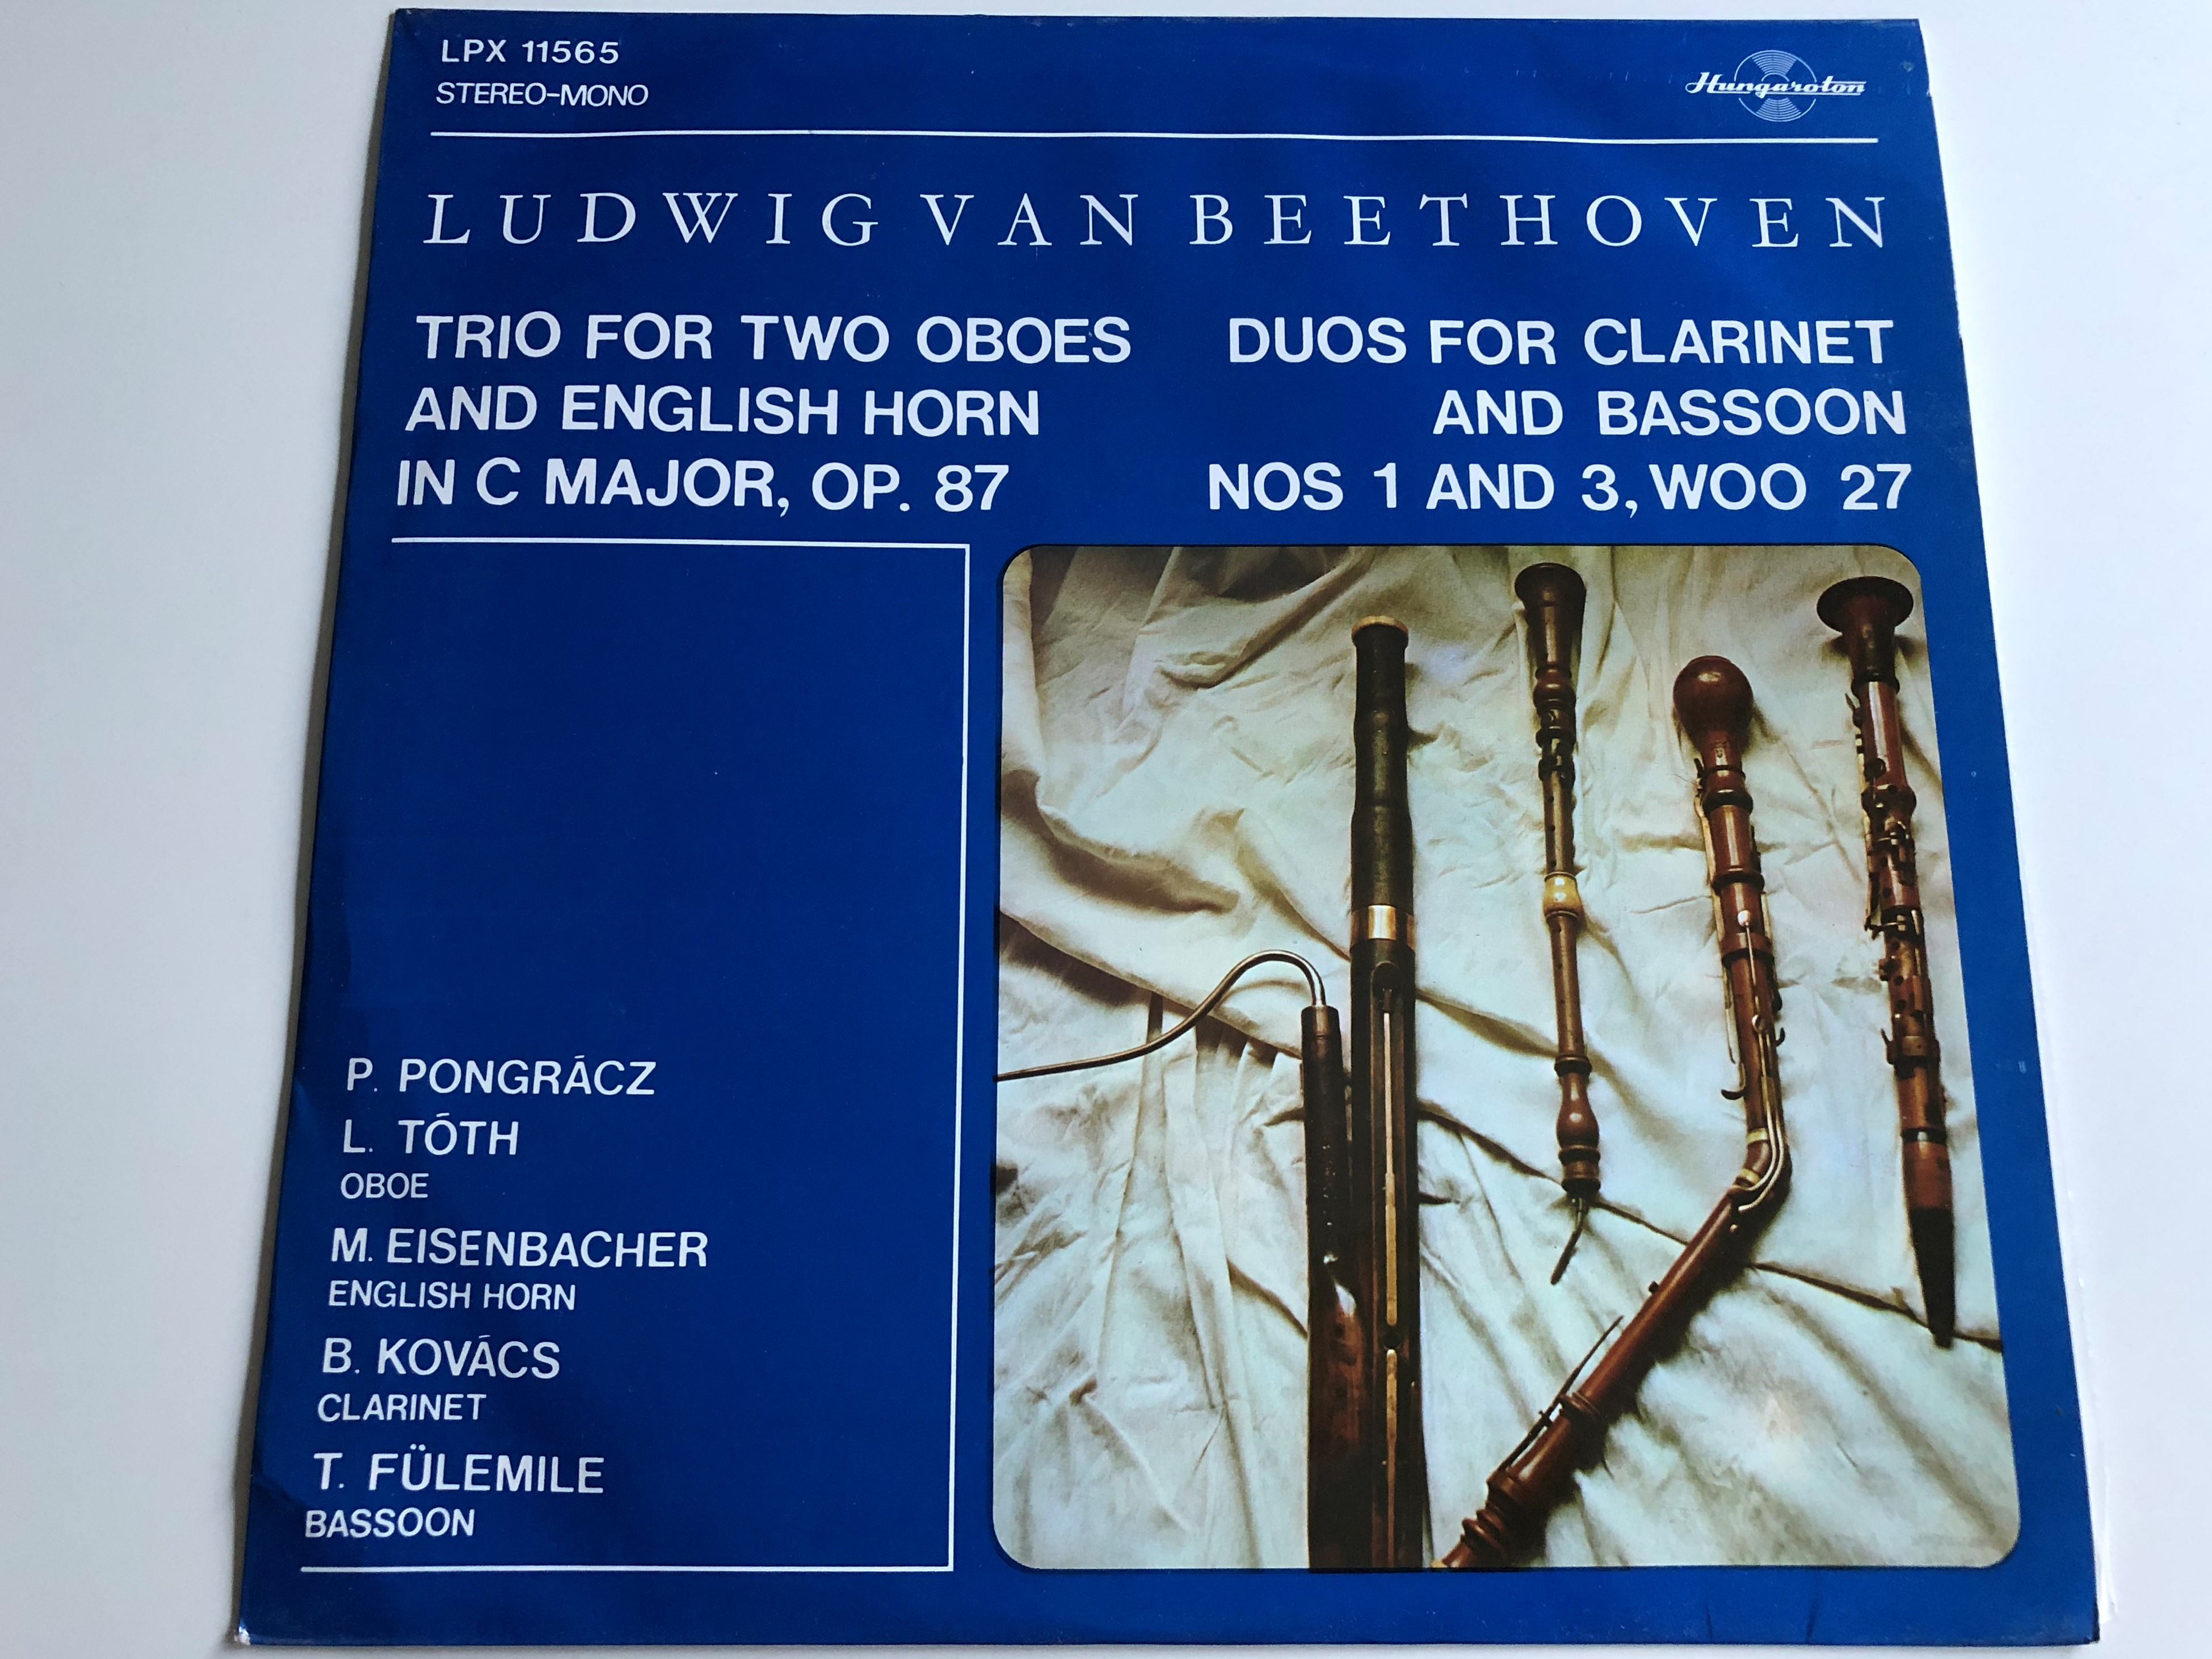 ludwig-van-beethoven-trio-for-two-oboes-and-english-horn-in-c-major-op.-87-duos-for-clarinet-and-bassoon-nos-1-and-3-woo-27-hungaroton-lp-stereo-mono-lpx-11565-1-.jpg